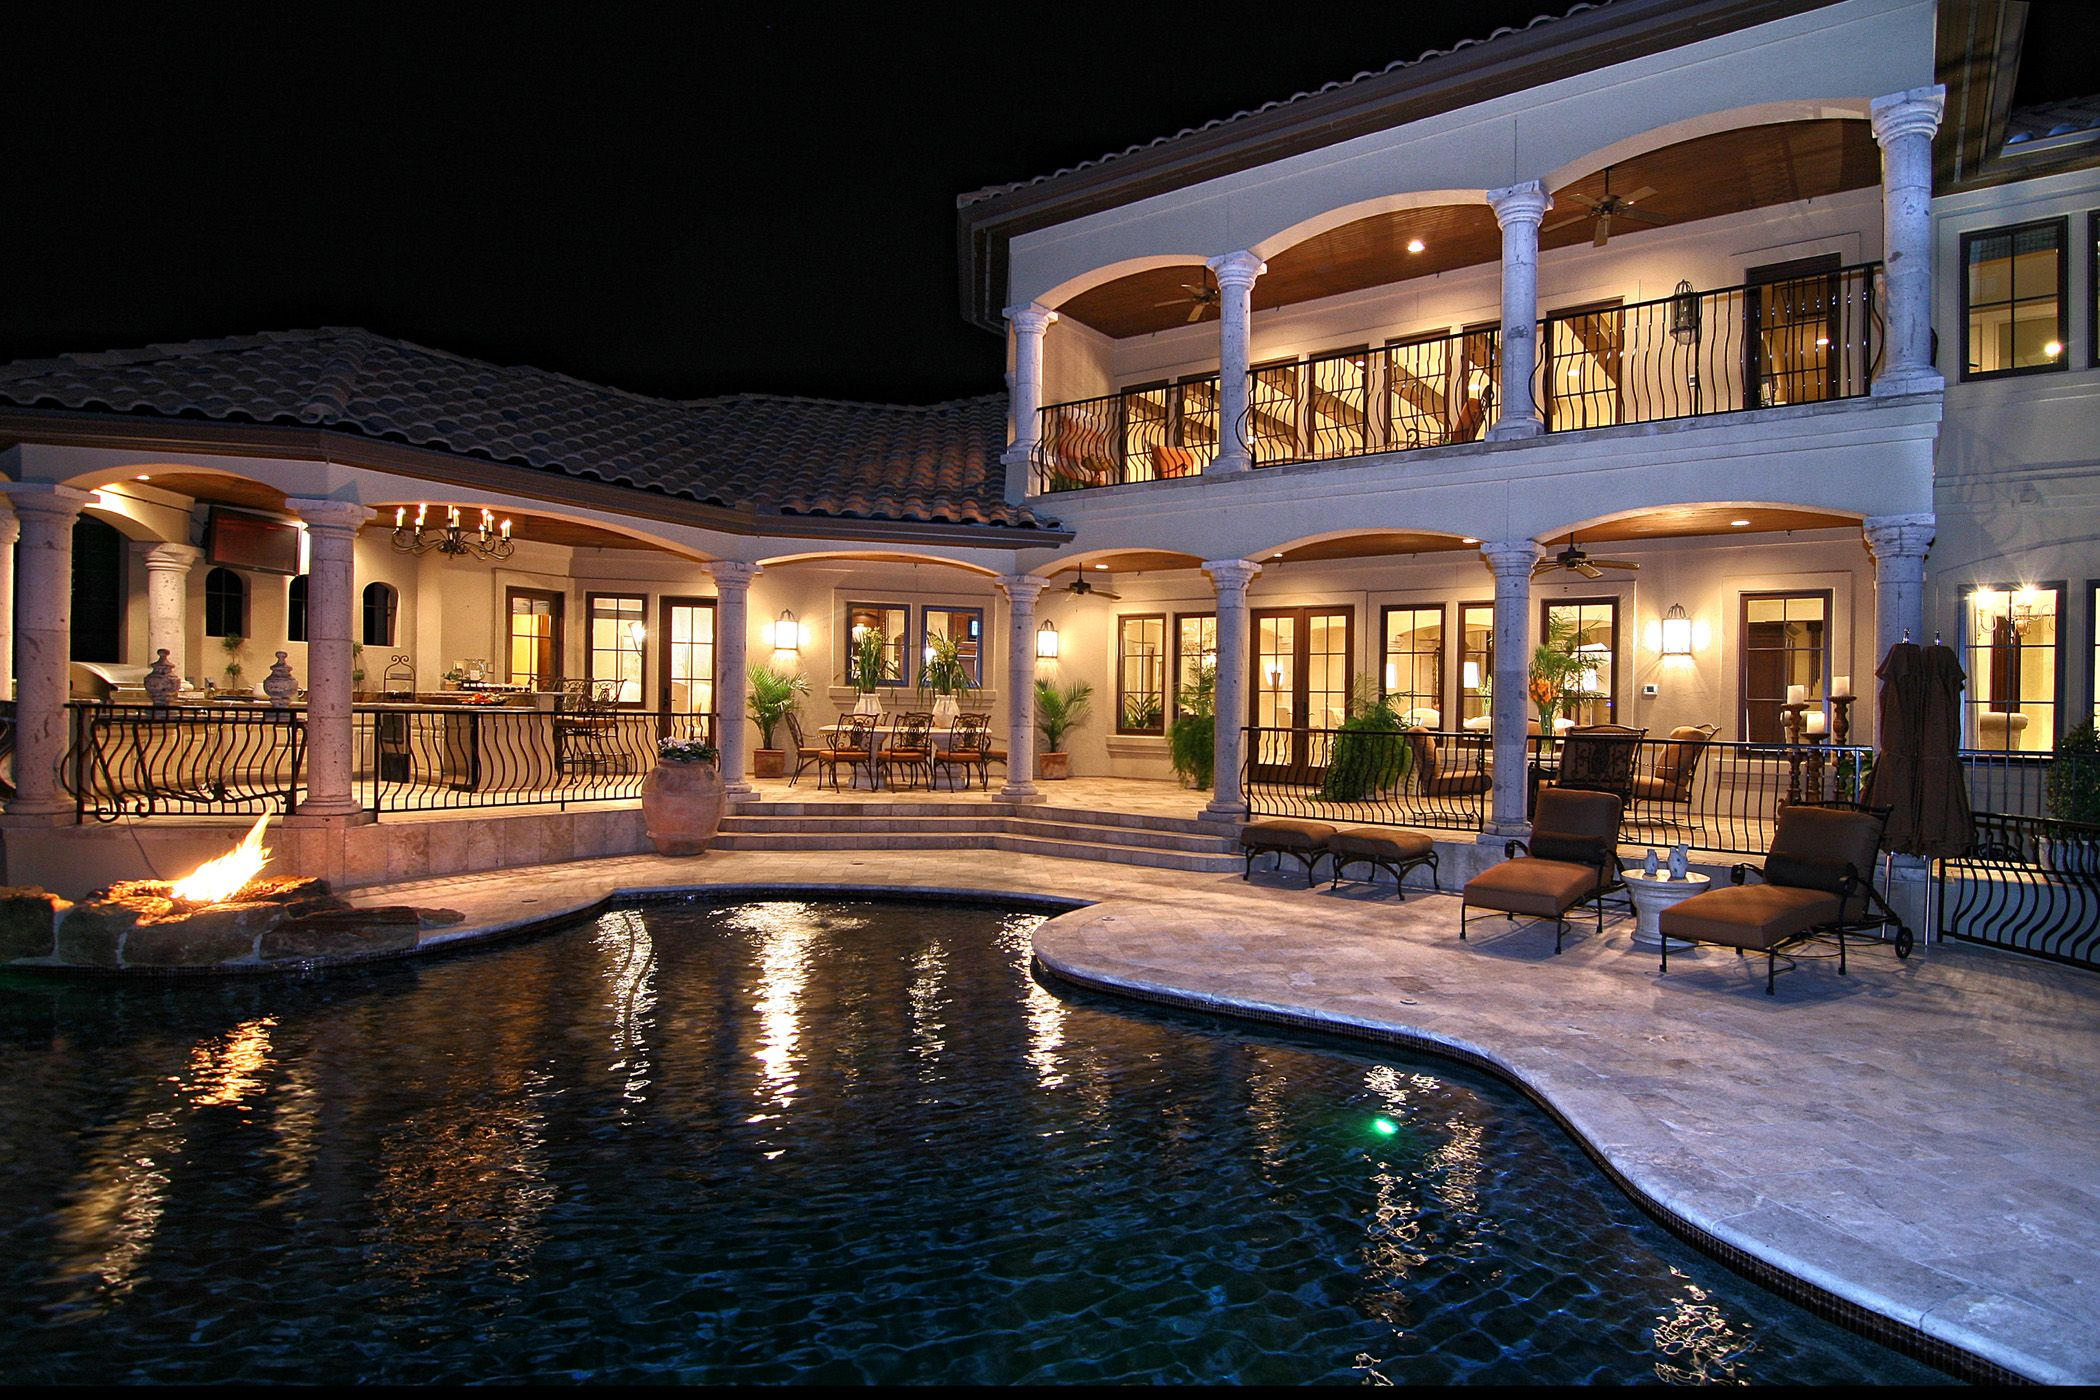 Luxury homes exterior - Tuscan Inspired Horseshoe Bay Lakeside Pool By Zbranek Holt Custom Homes Horseshoe Bay Luxury